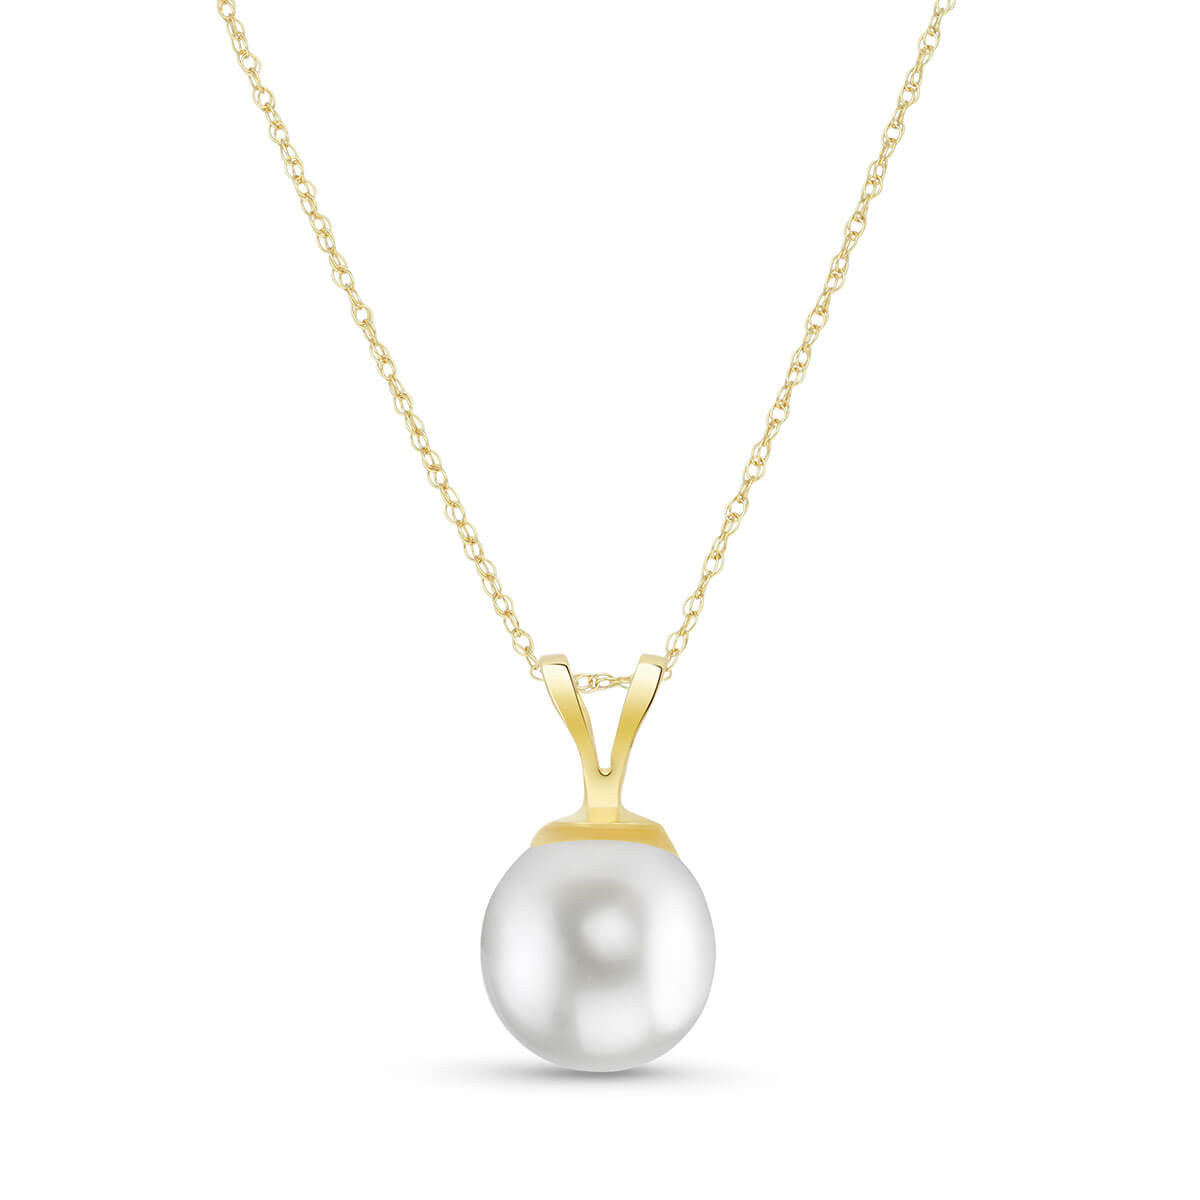 Round Cut Pearl Pendant Necklace 2 ct in 9ct Gold